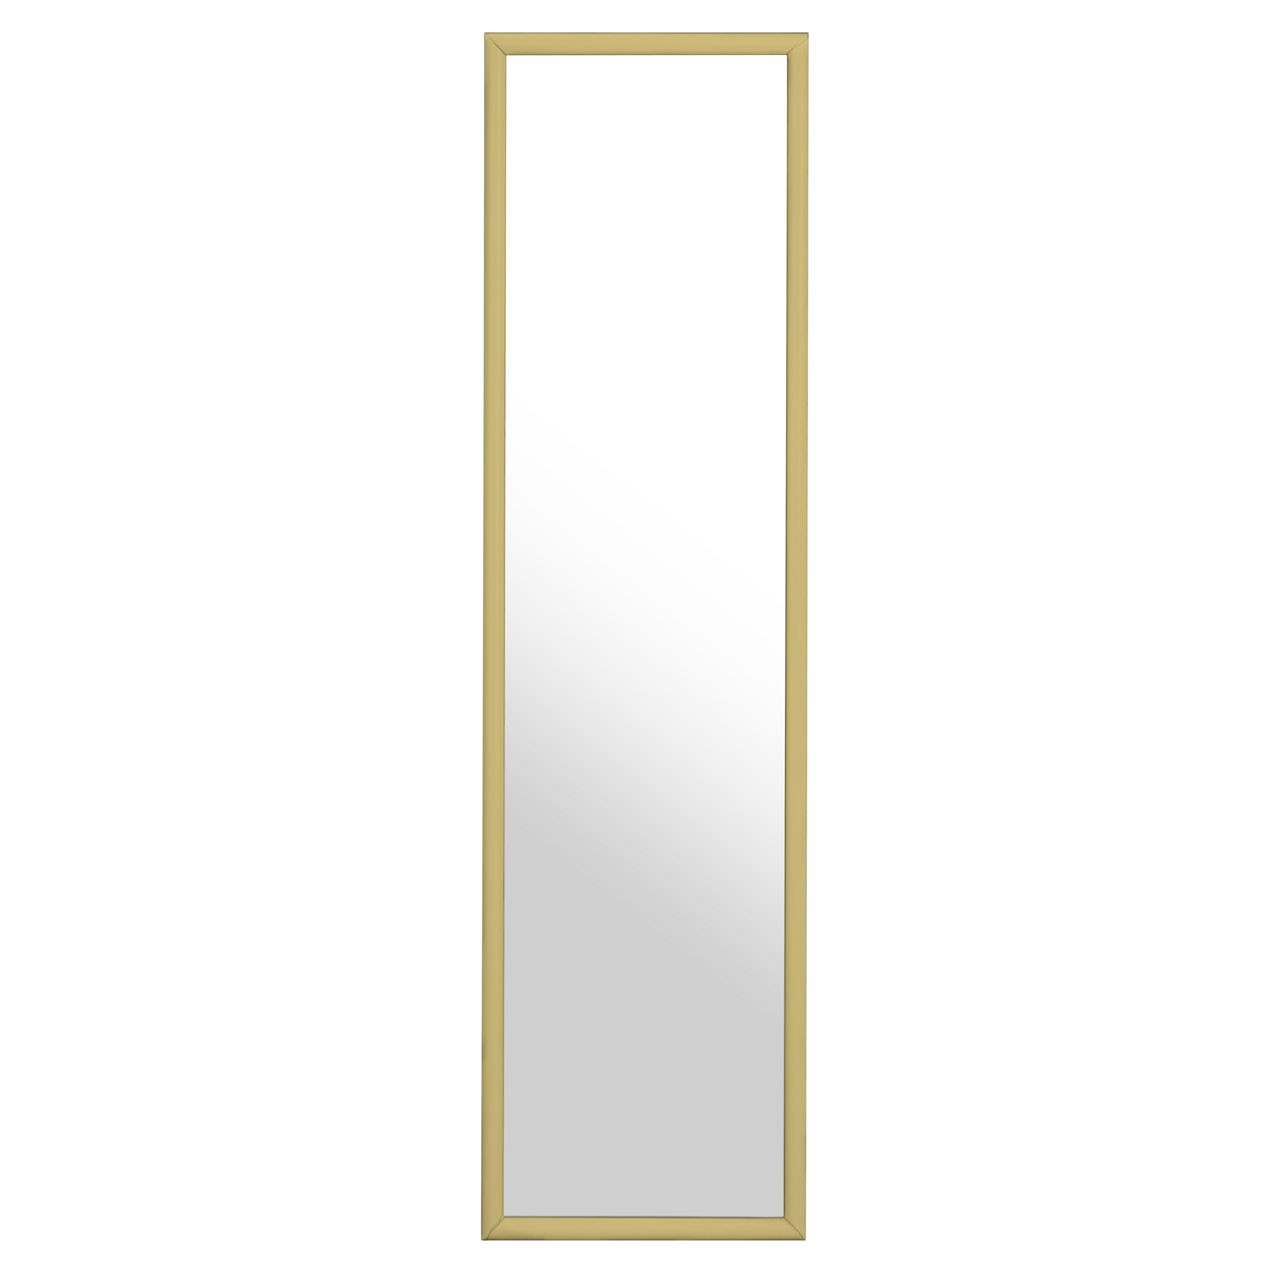 Gold Plastic Frame Over Door Mirror Understated Design